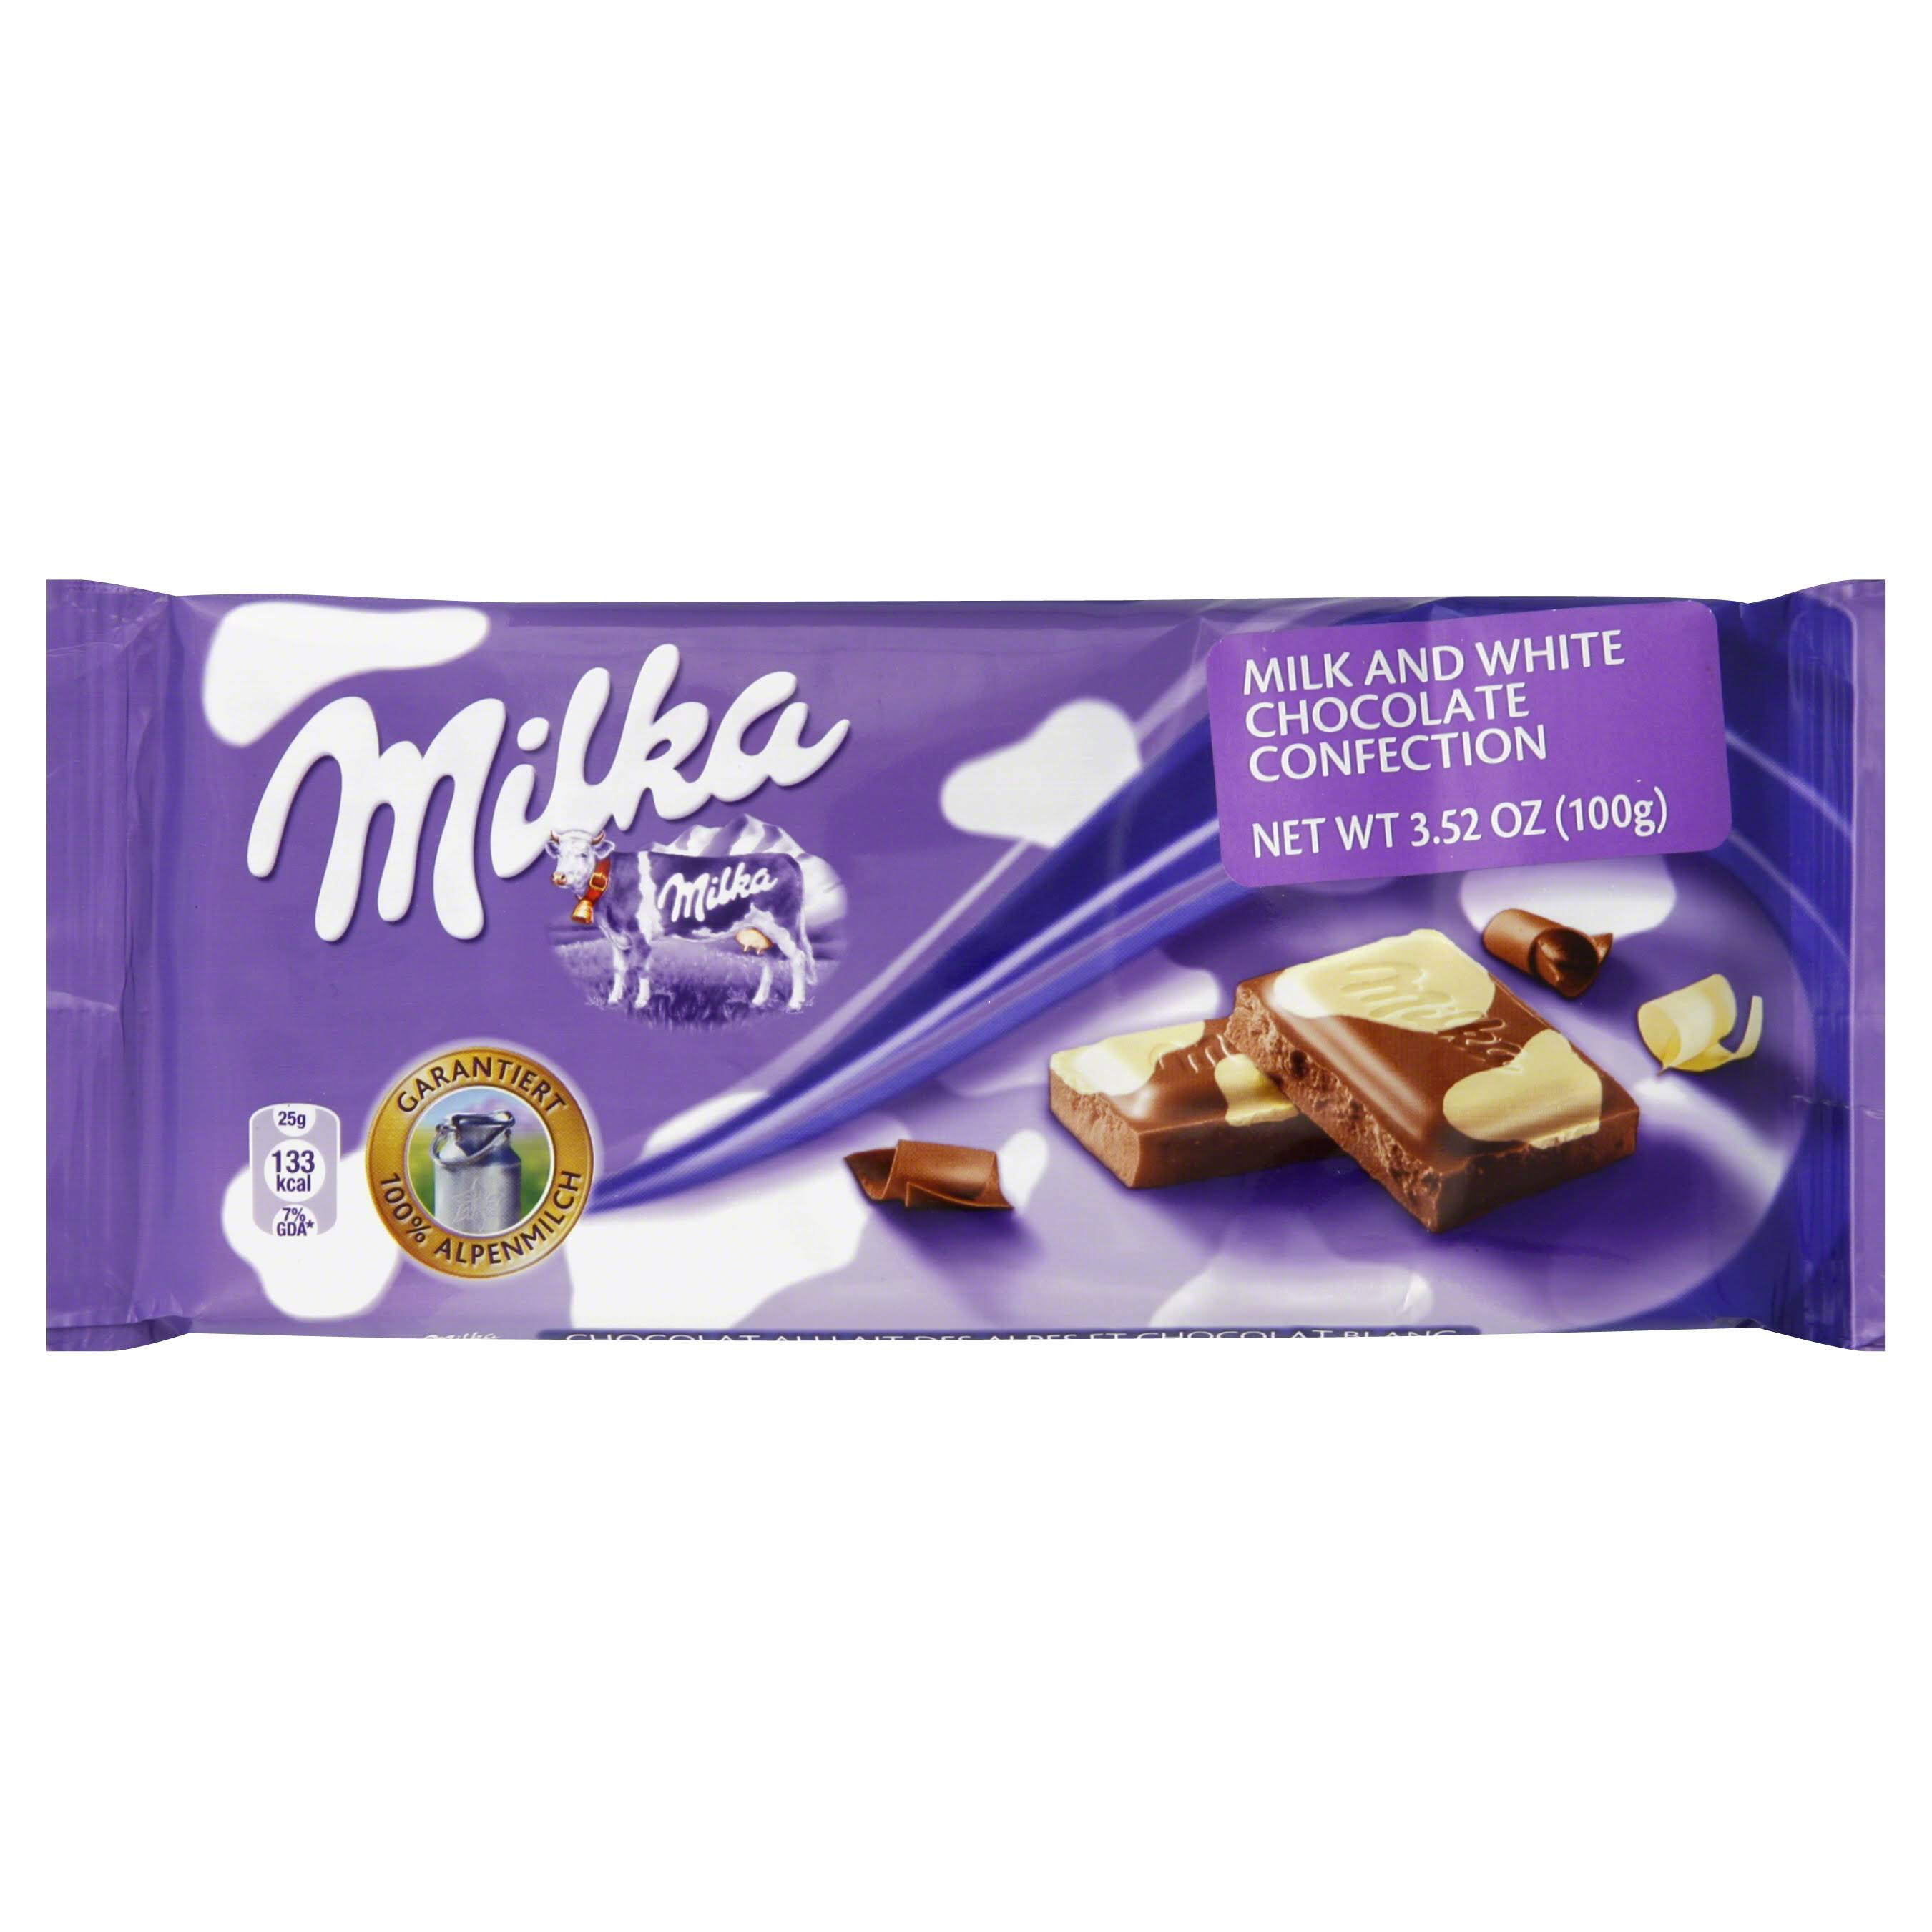 Milka Milk and White Chocolate Confection - 3.52 oz